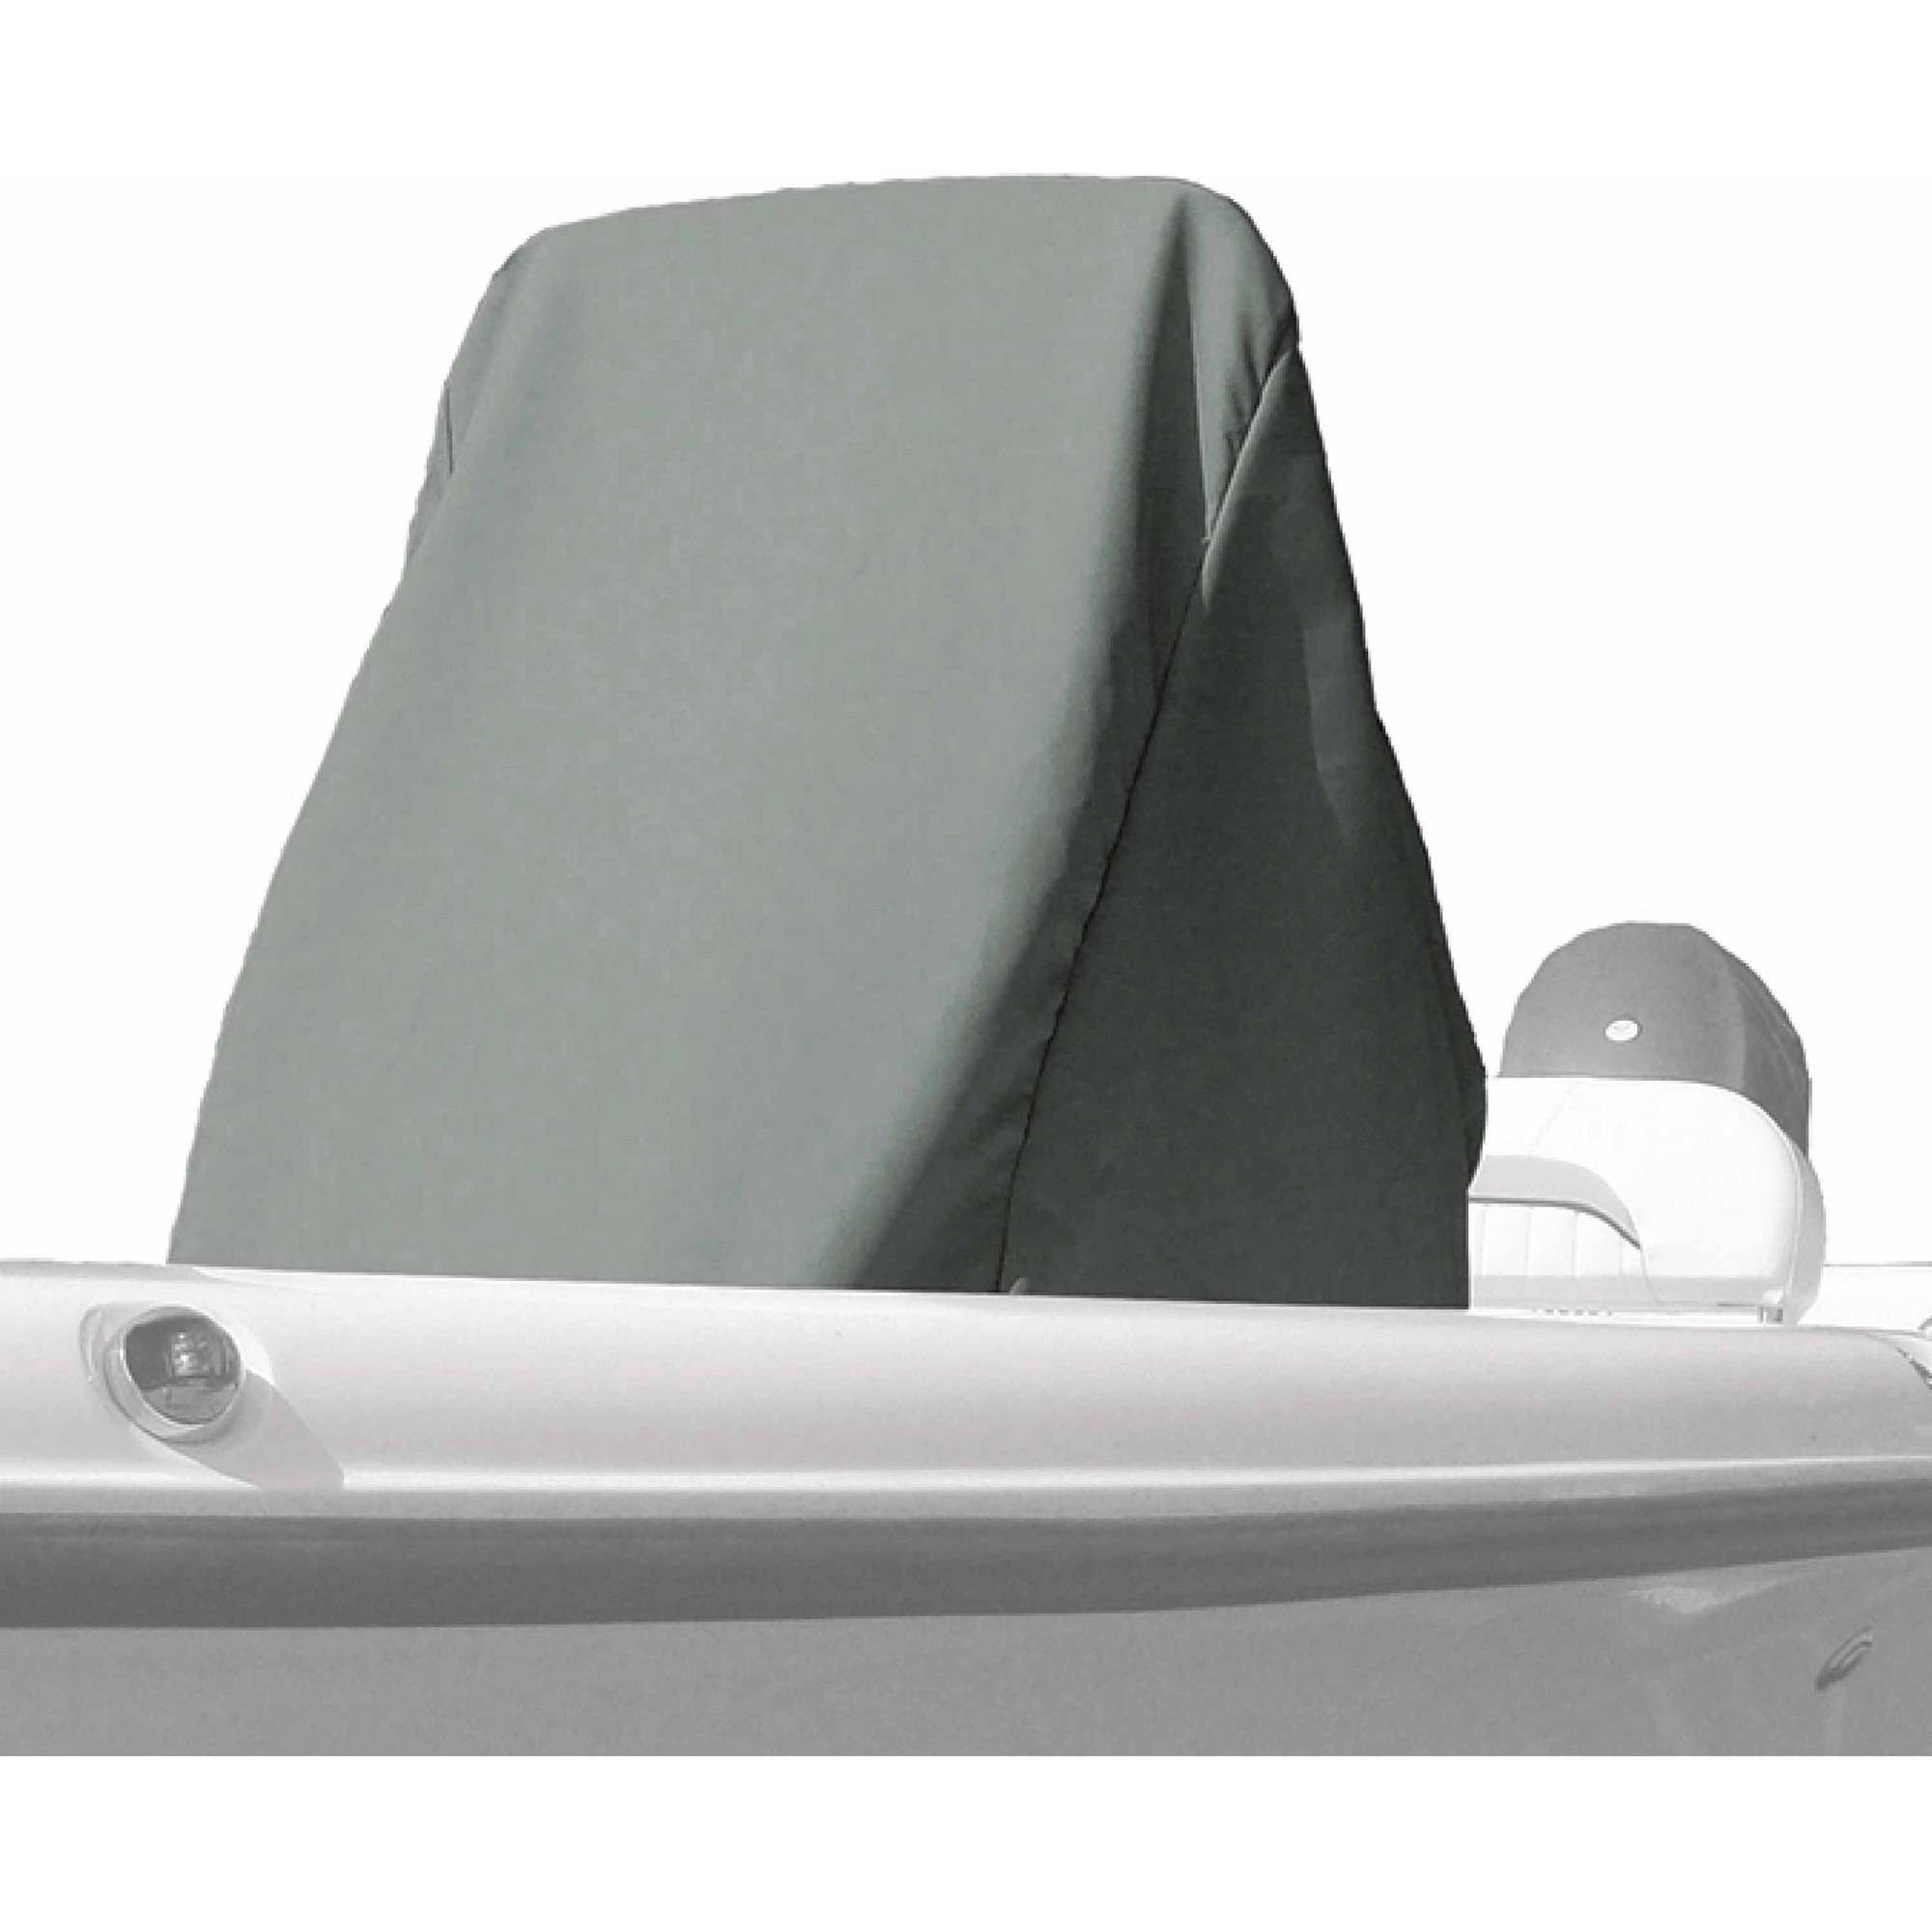 Seachoice Polyester Center Console Cover, Gray by Seachoice Products